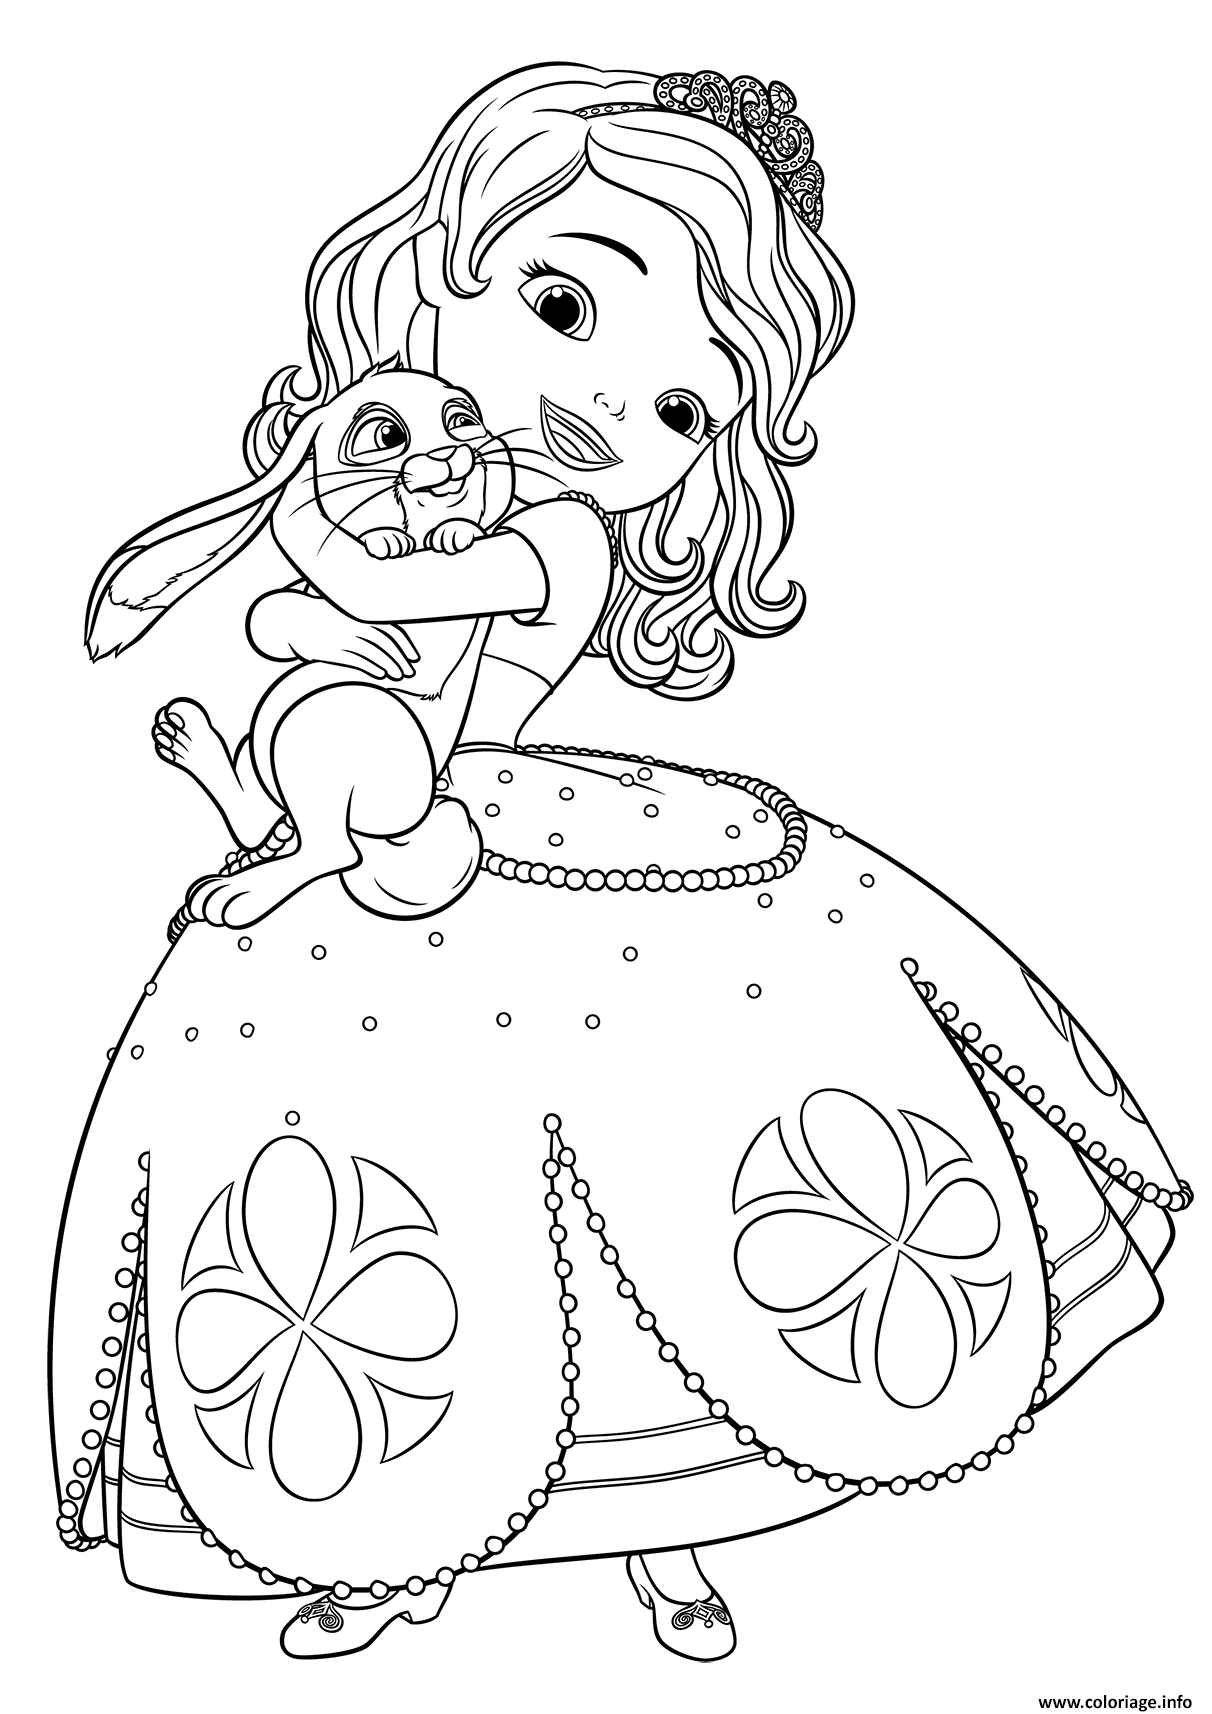 coloring pages of princess sofia get this online sofia the first coloring pages 44945 coloring pages princess sofia of